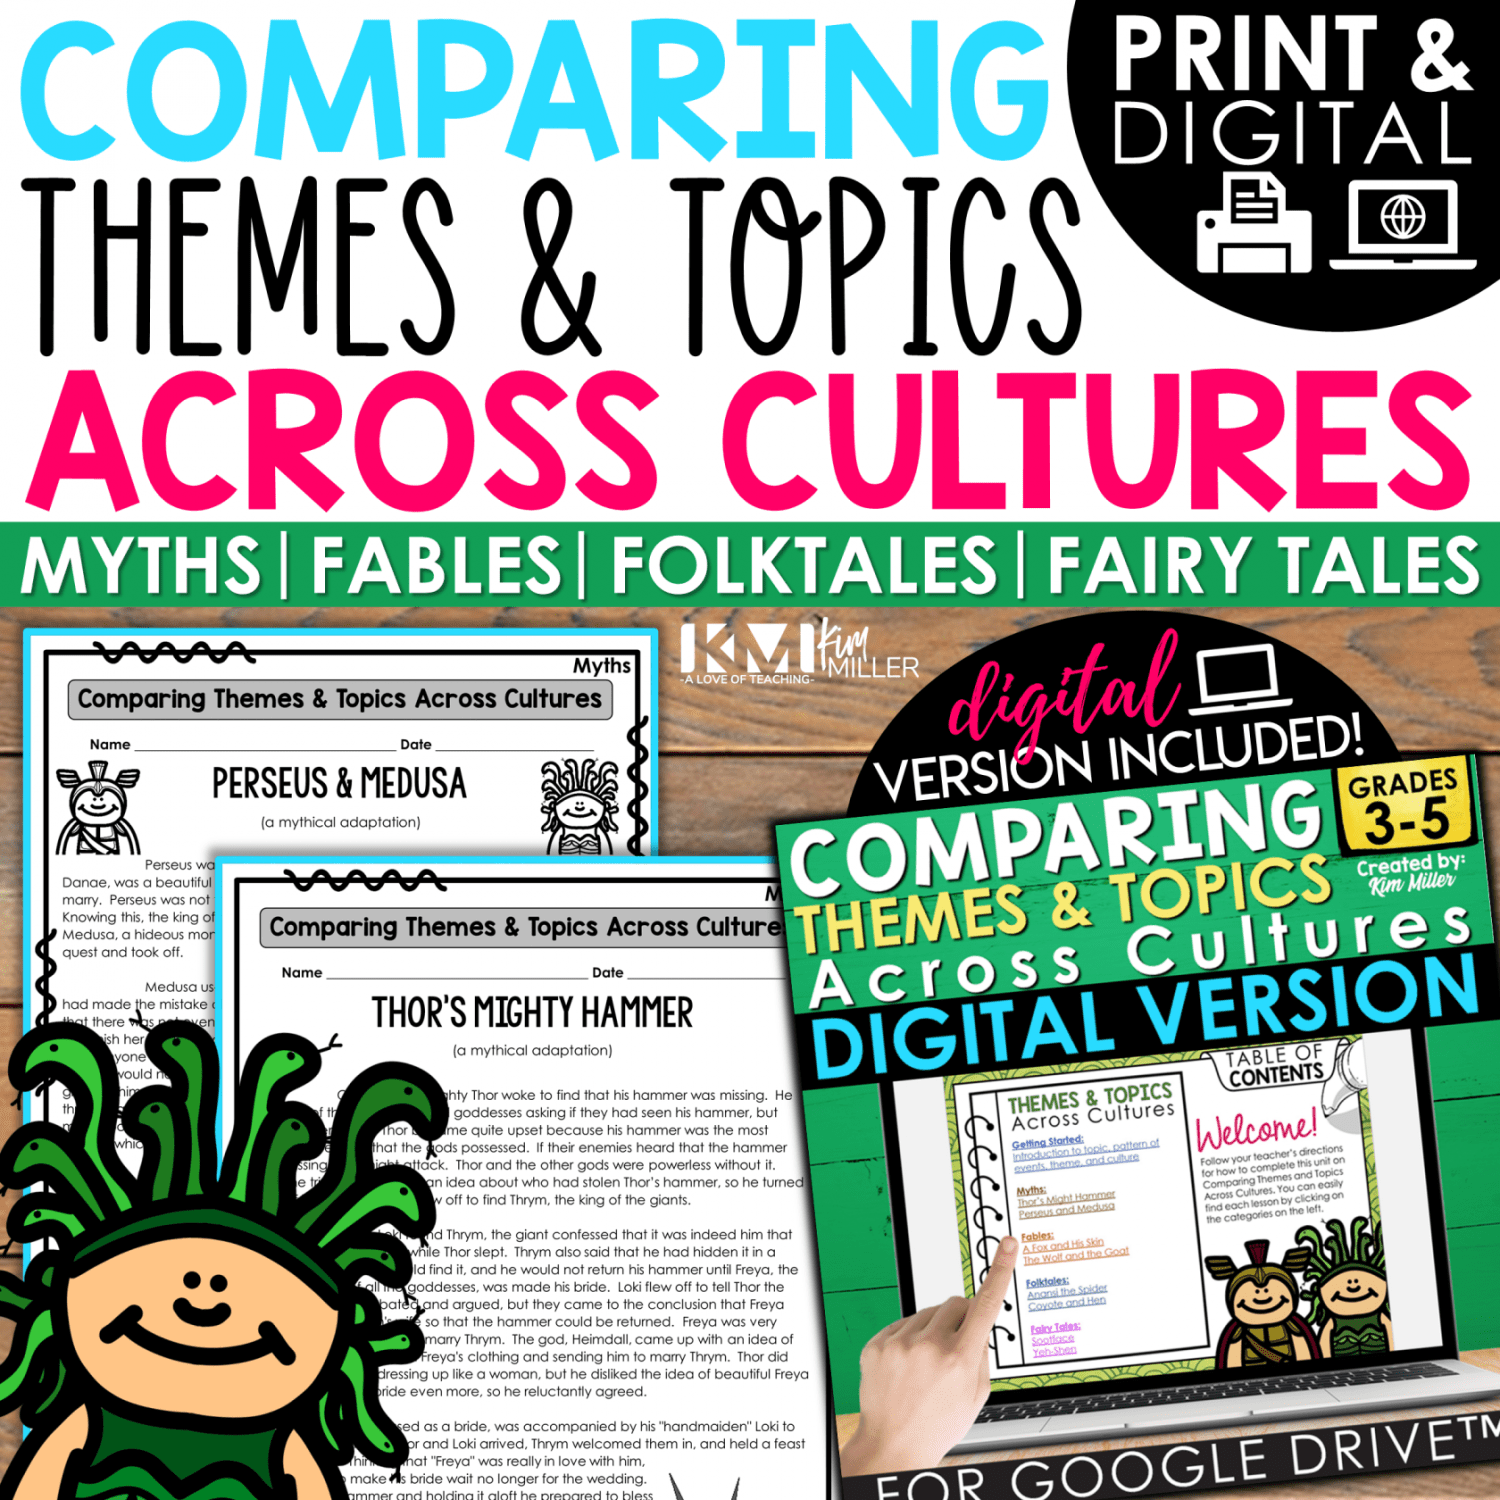 Compare & Contrast Themes and Topics Across Cultures